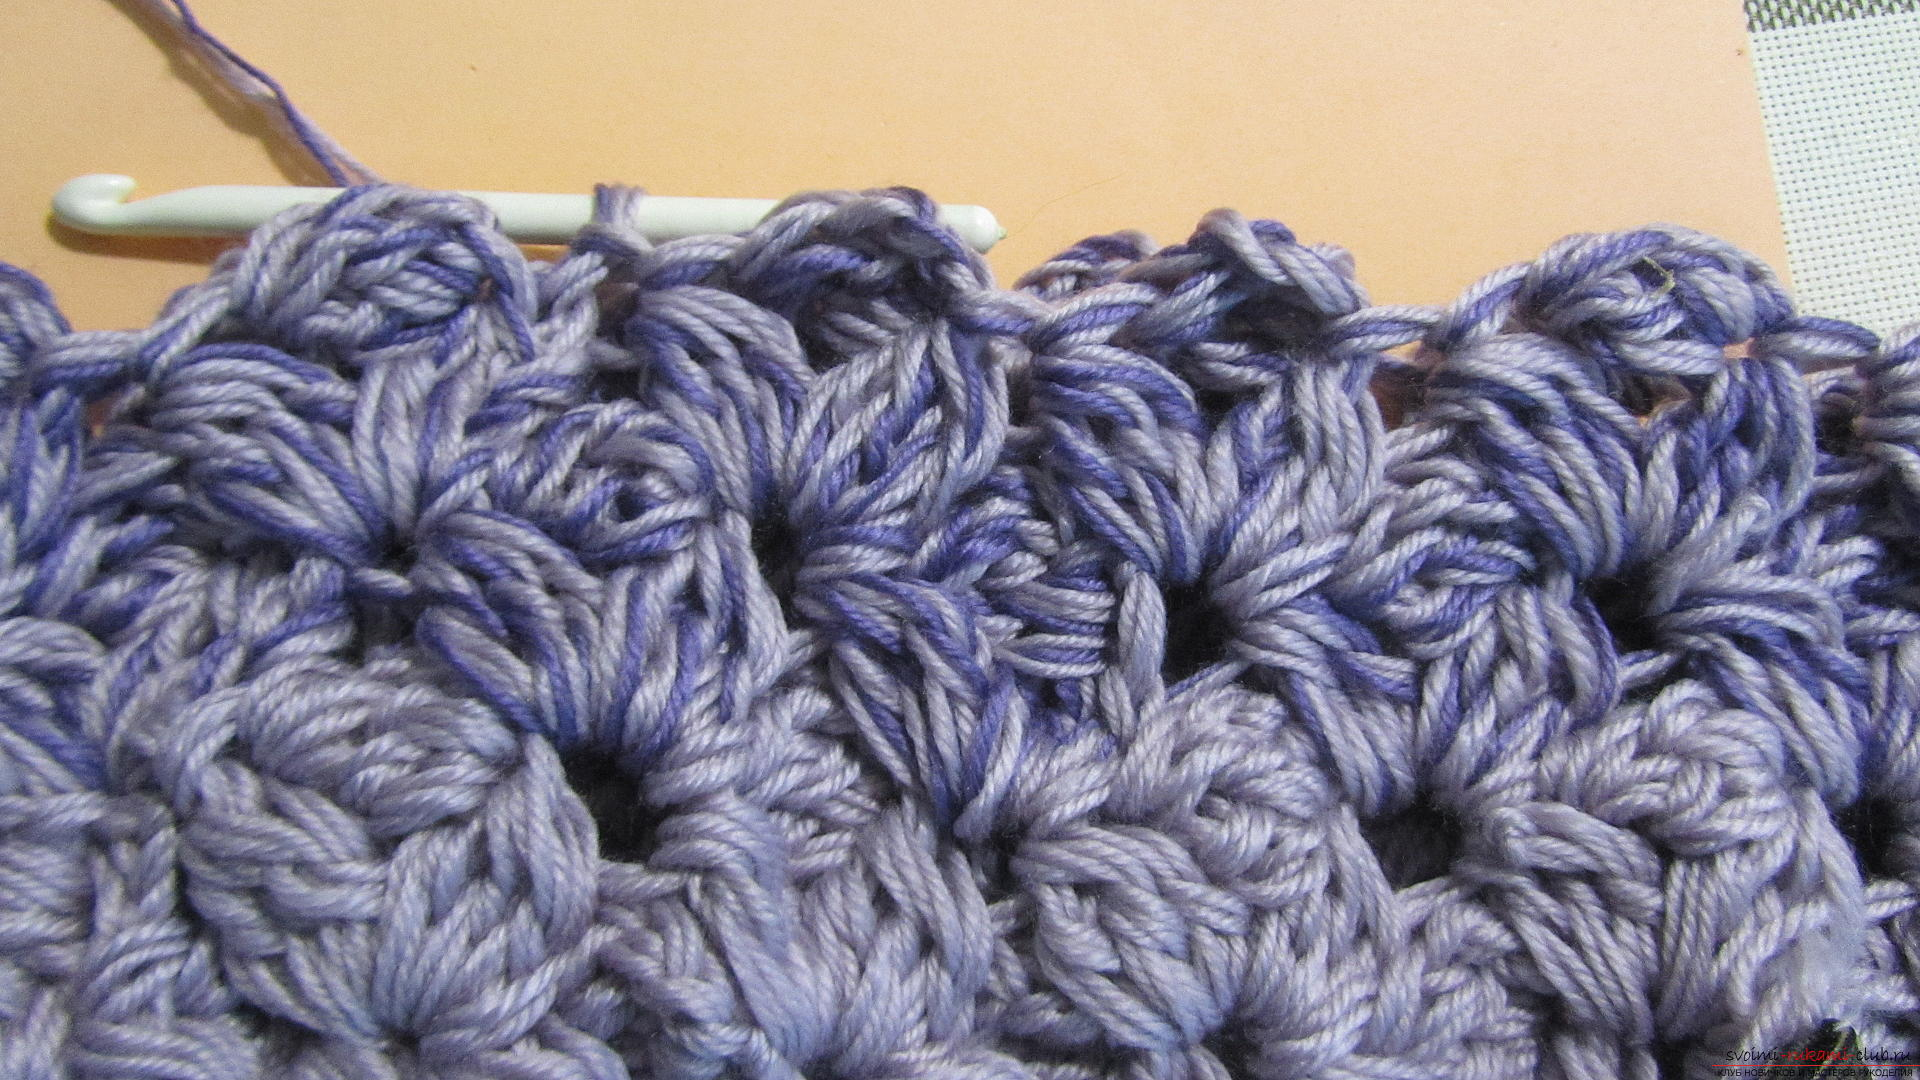 This detailed master-class with a photo contains crochet snatch crochet patterns. Picture №25